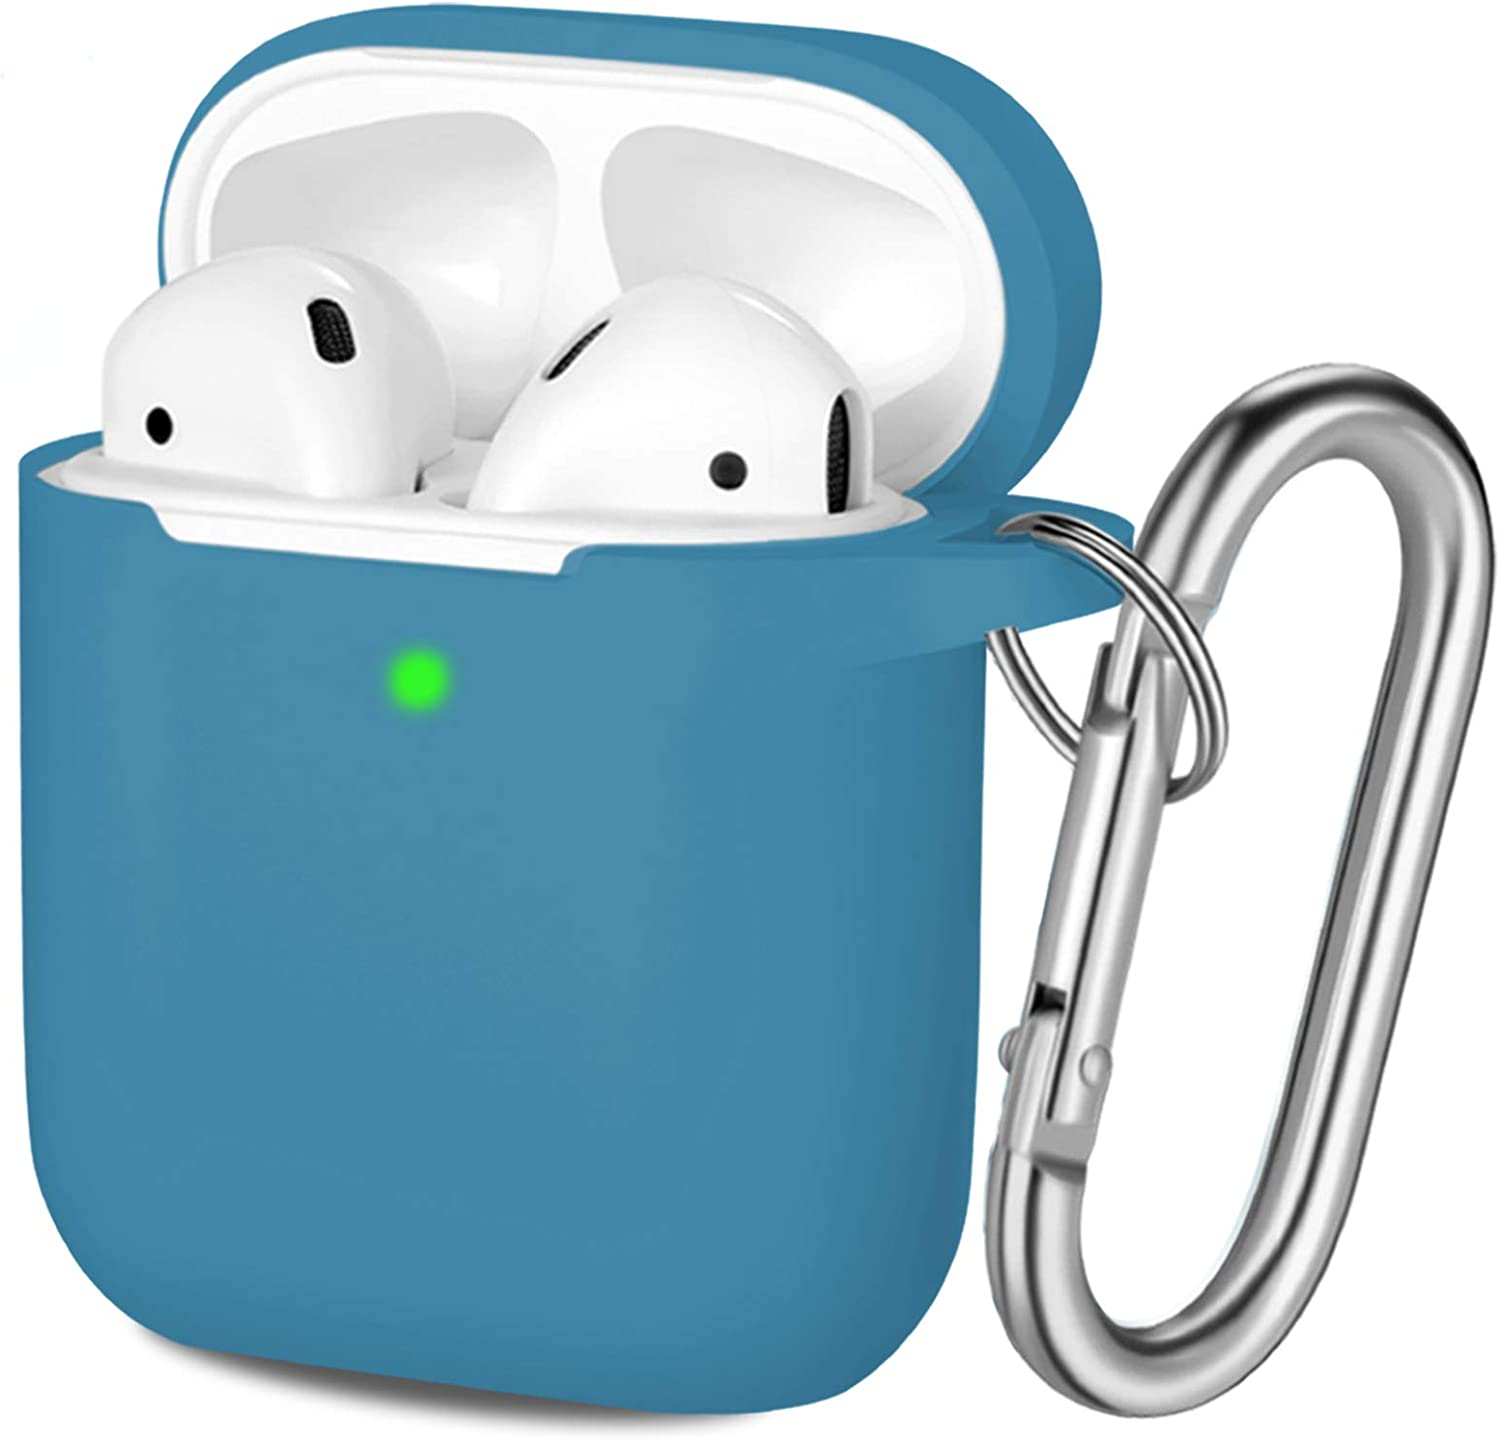 Hamile Compatible with AirPods Case [Front LED Visible] Soft Silicone Protective Cases Cover Skin Designed for Apple AirPod 2 & 1, Women Men, with Keychain - Blue